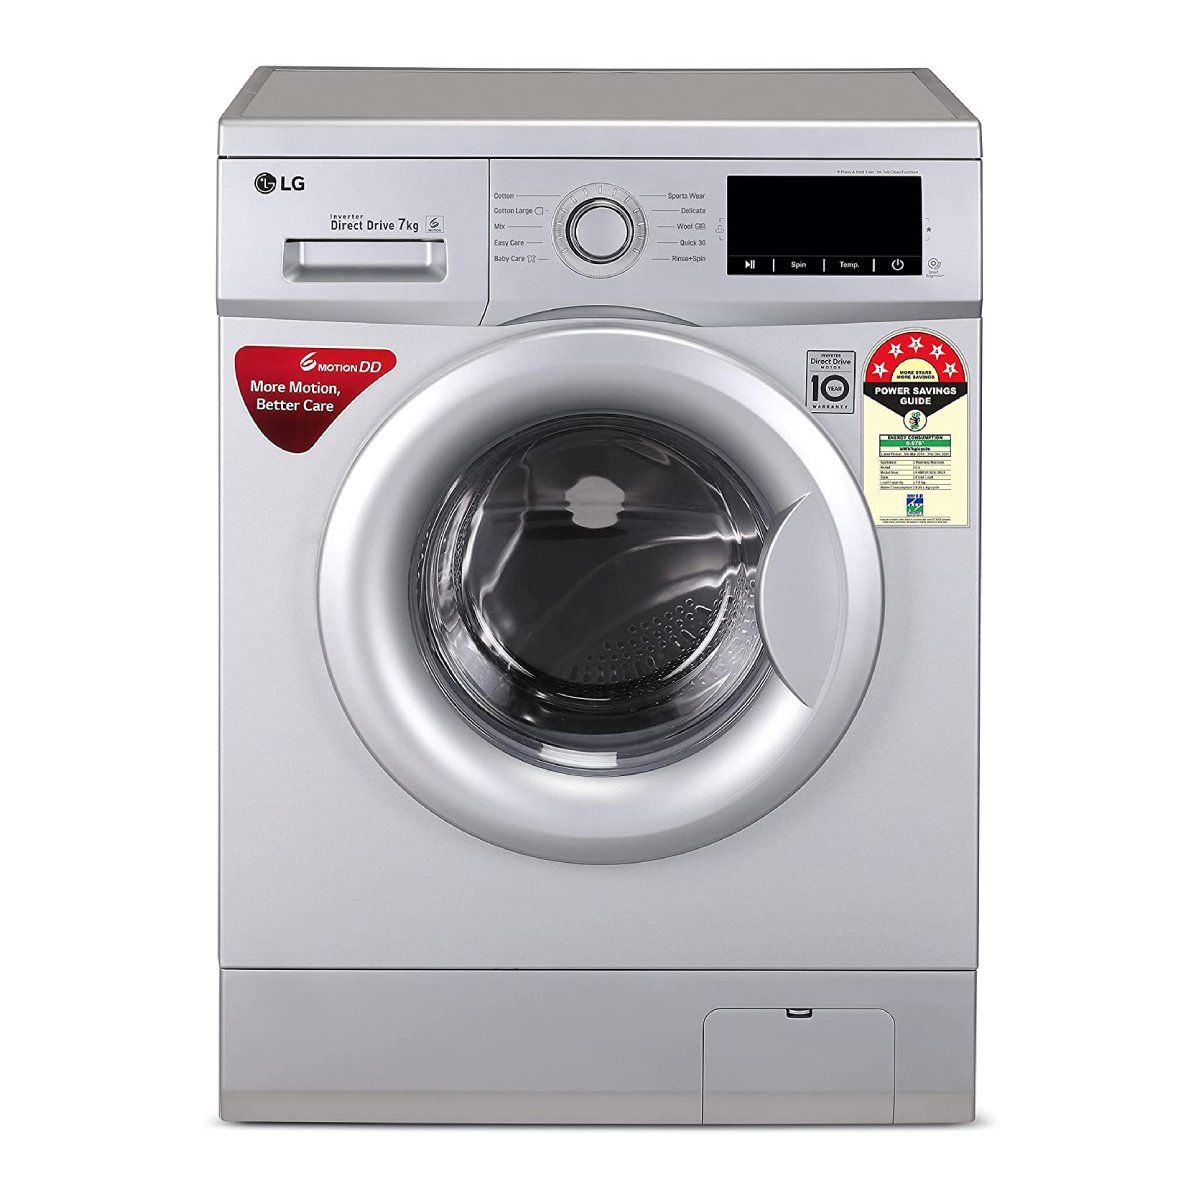 LG 7.0 Kg 5 Star Inverter Fully-Automatic Front Loading Washing Machine (FHM1207ADL)